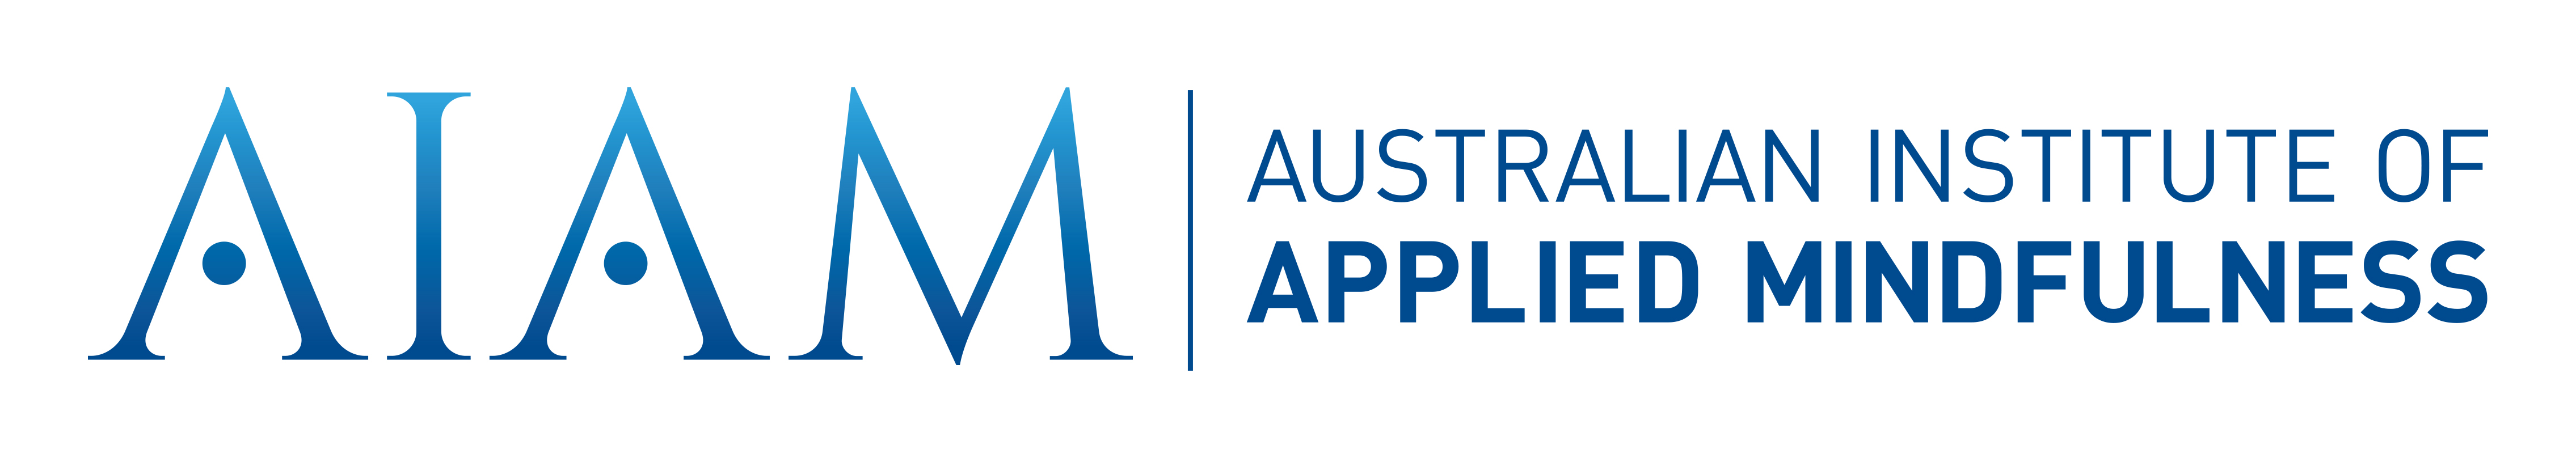 The Australian Institute of Applied Mindfulness